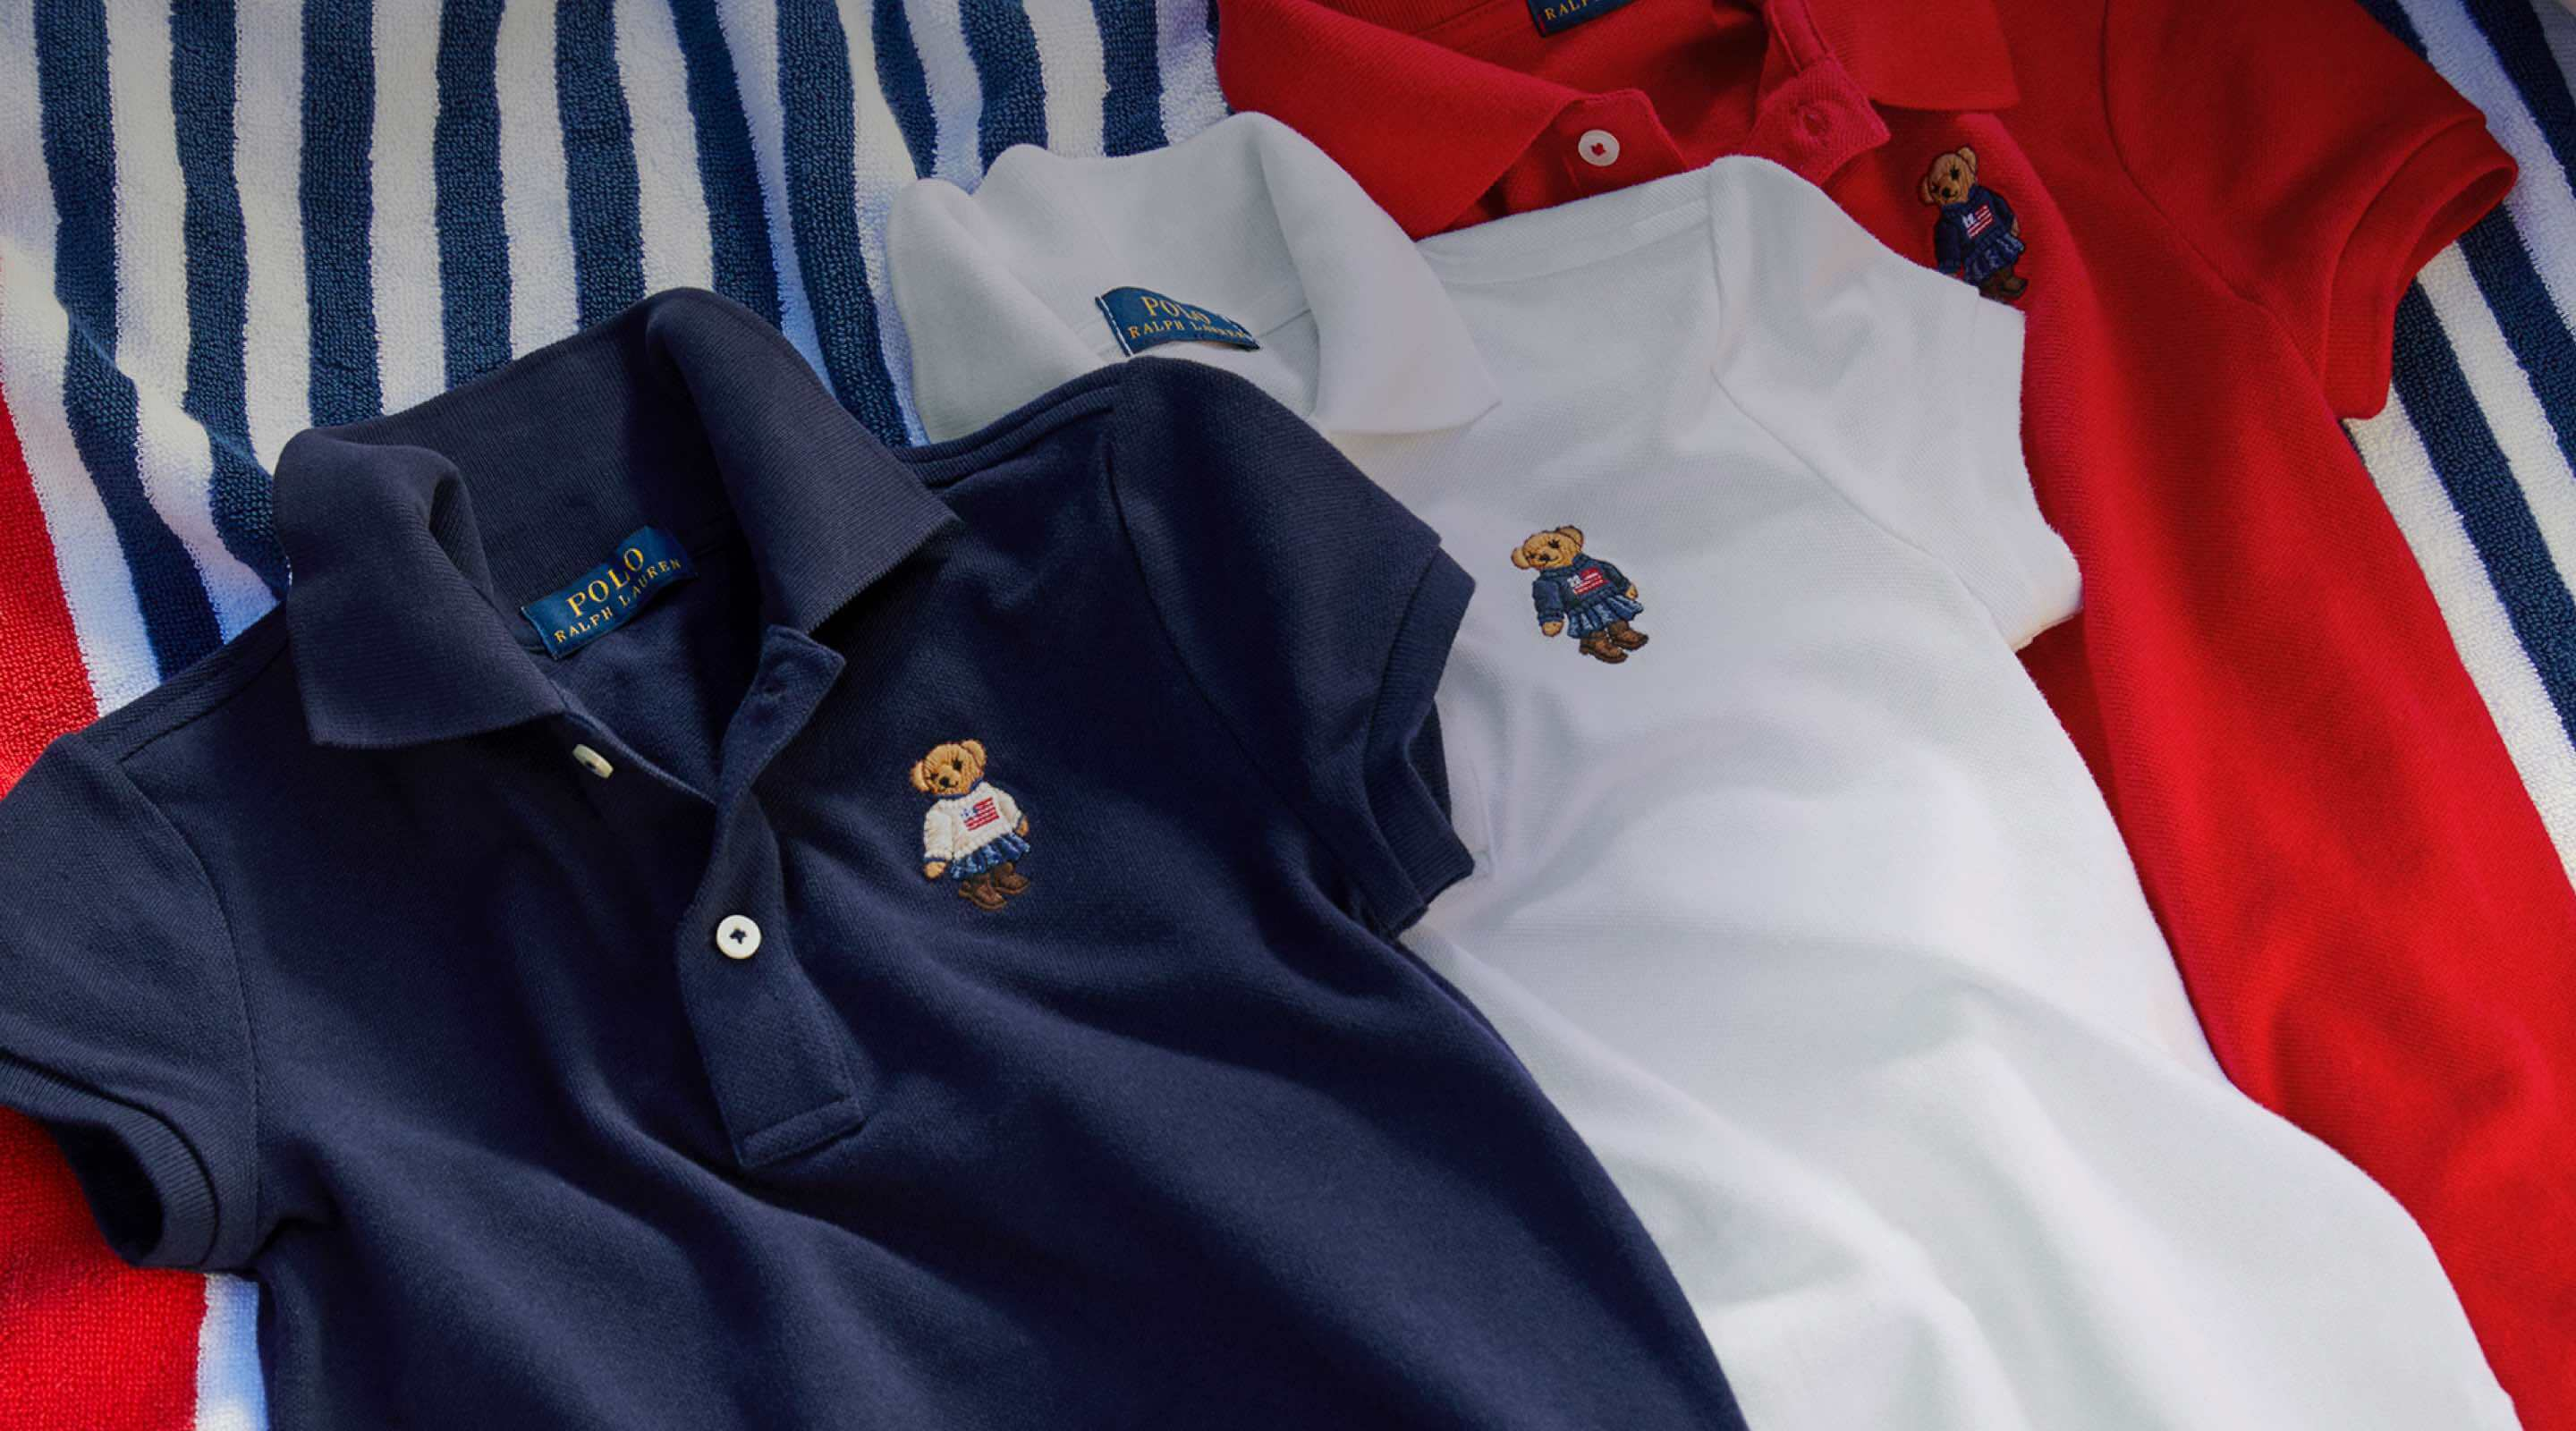 Polo shirts with different Polo Bear embroideries